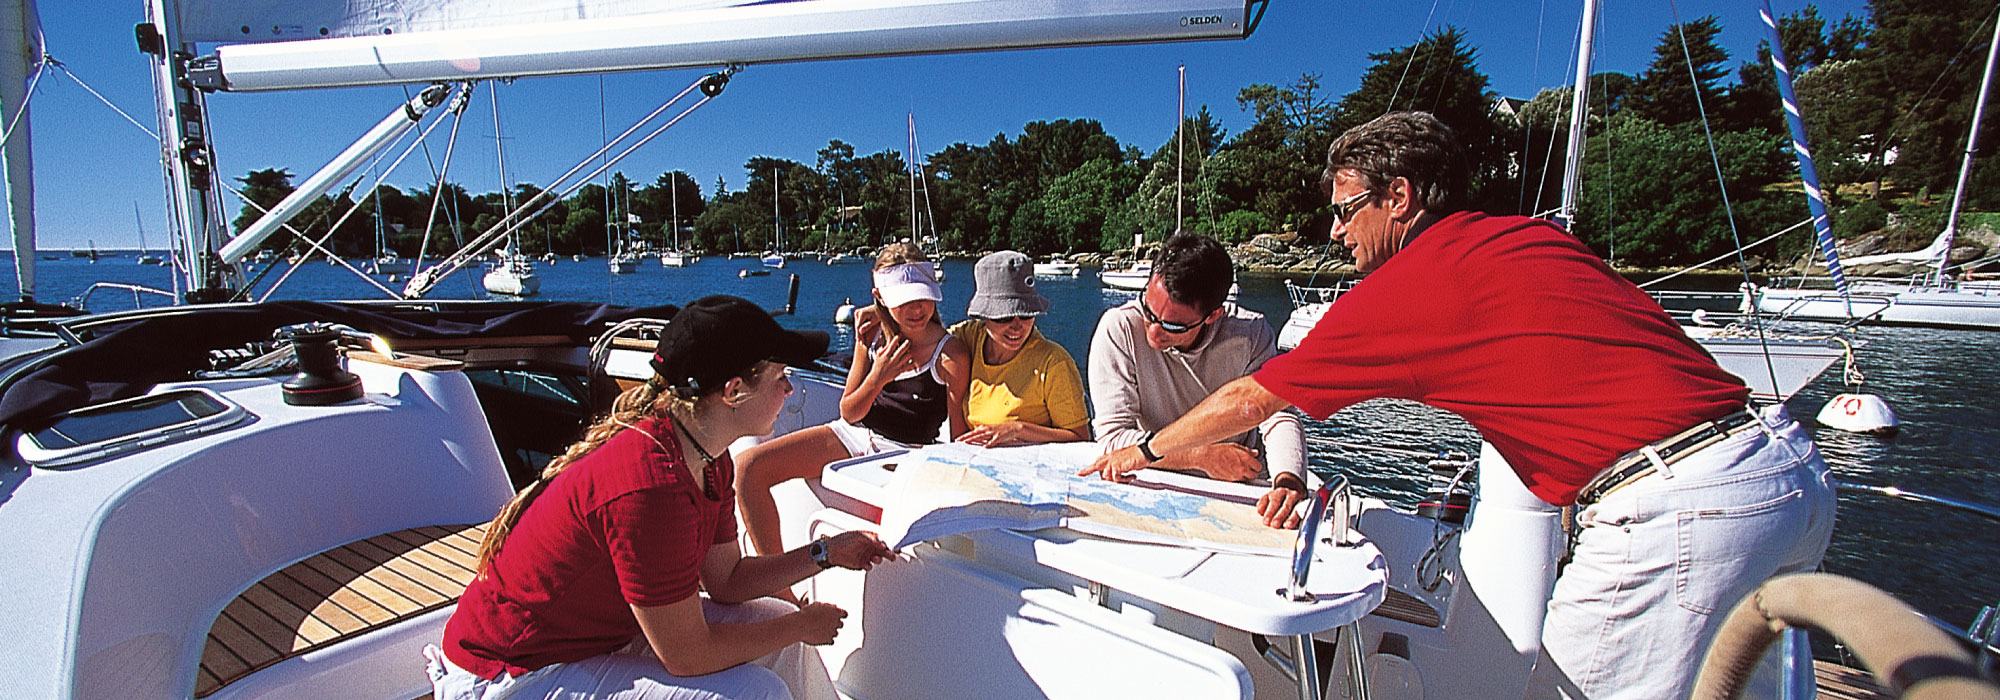 Learning Charters from Tenrag Yacht Charters